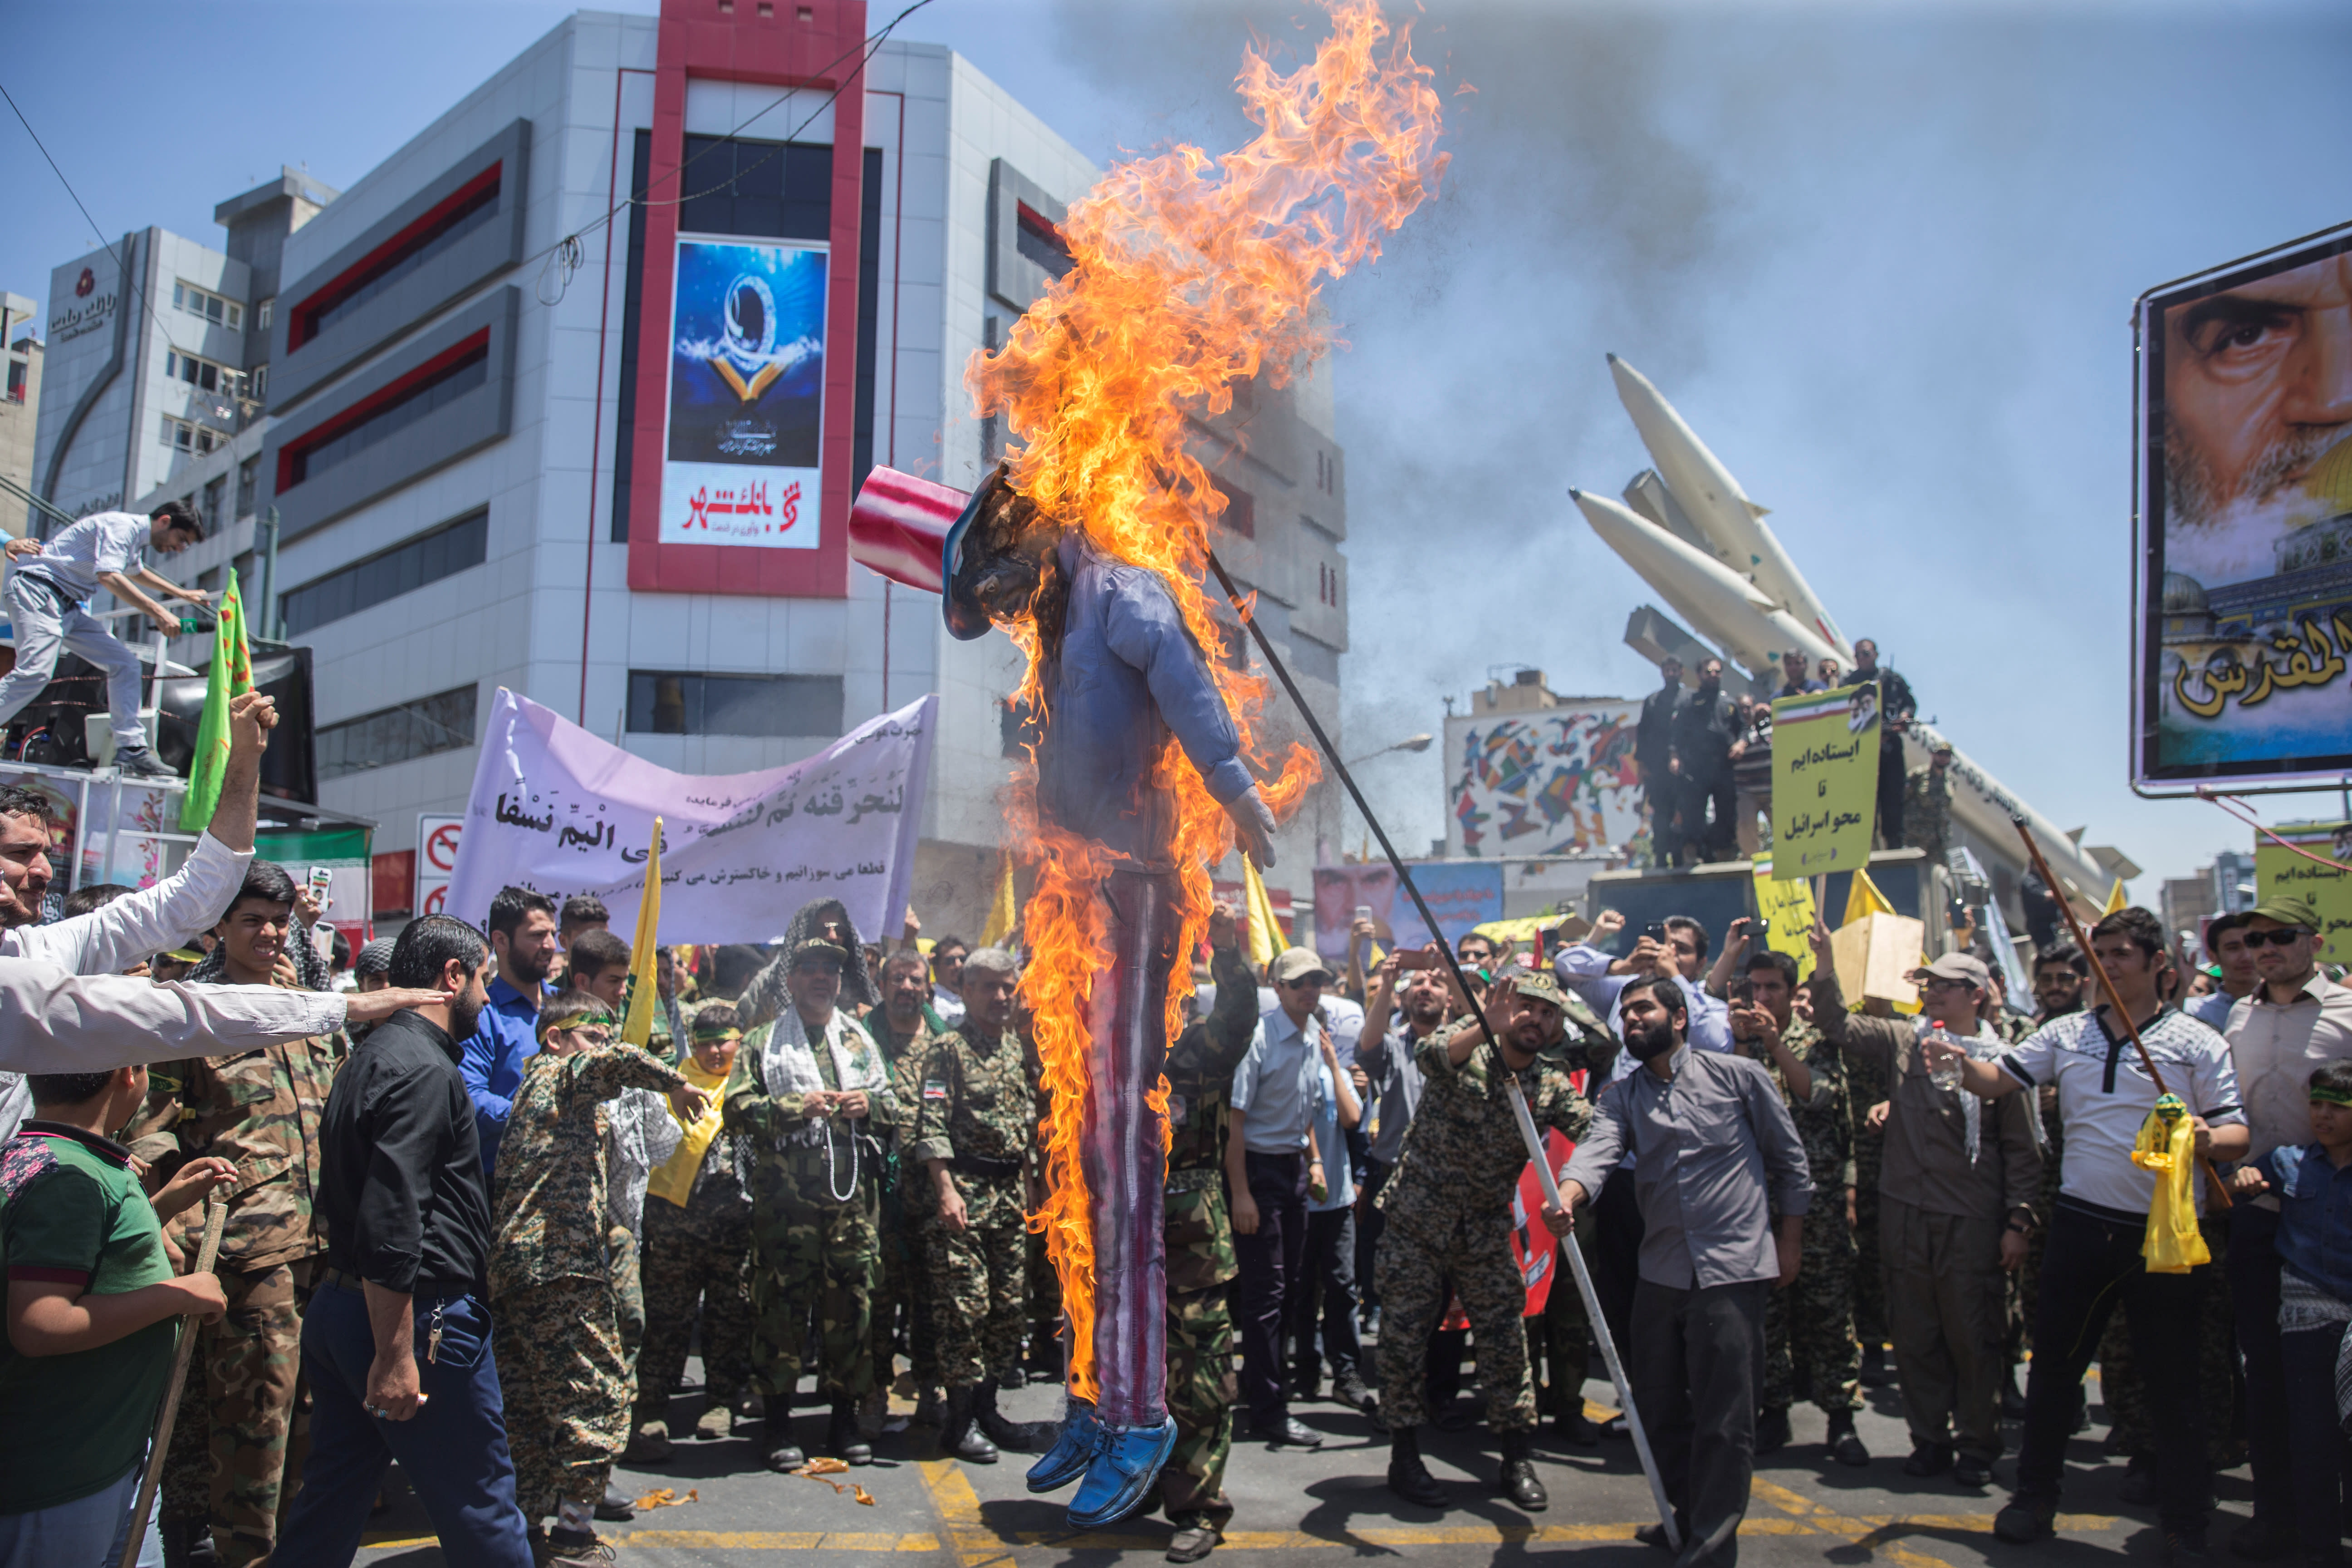 A scarecrow model is set on fire by Iranian demonstratorson during the annual pro-Palestinian rally marking Al-Quds Day in Tehran, Iran, June 23, 2017. (NAZANIN TABATABAEE YAZDI/ TIMA VIA REUTERS)